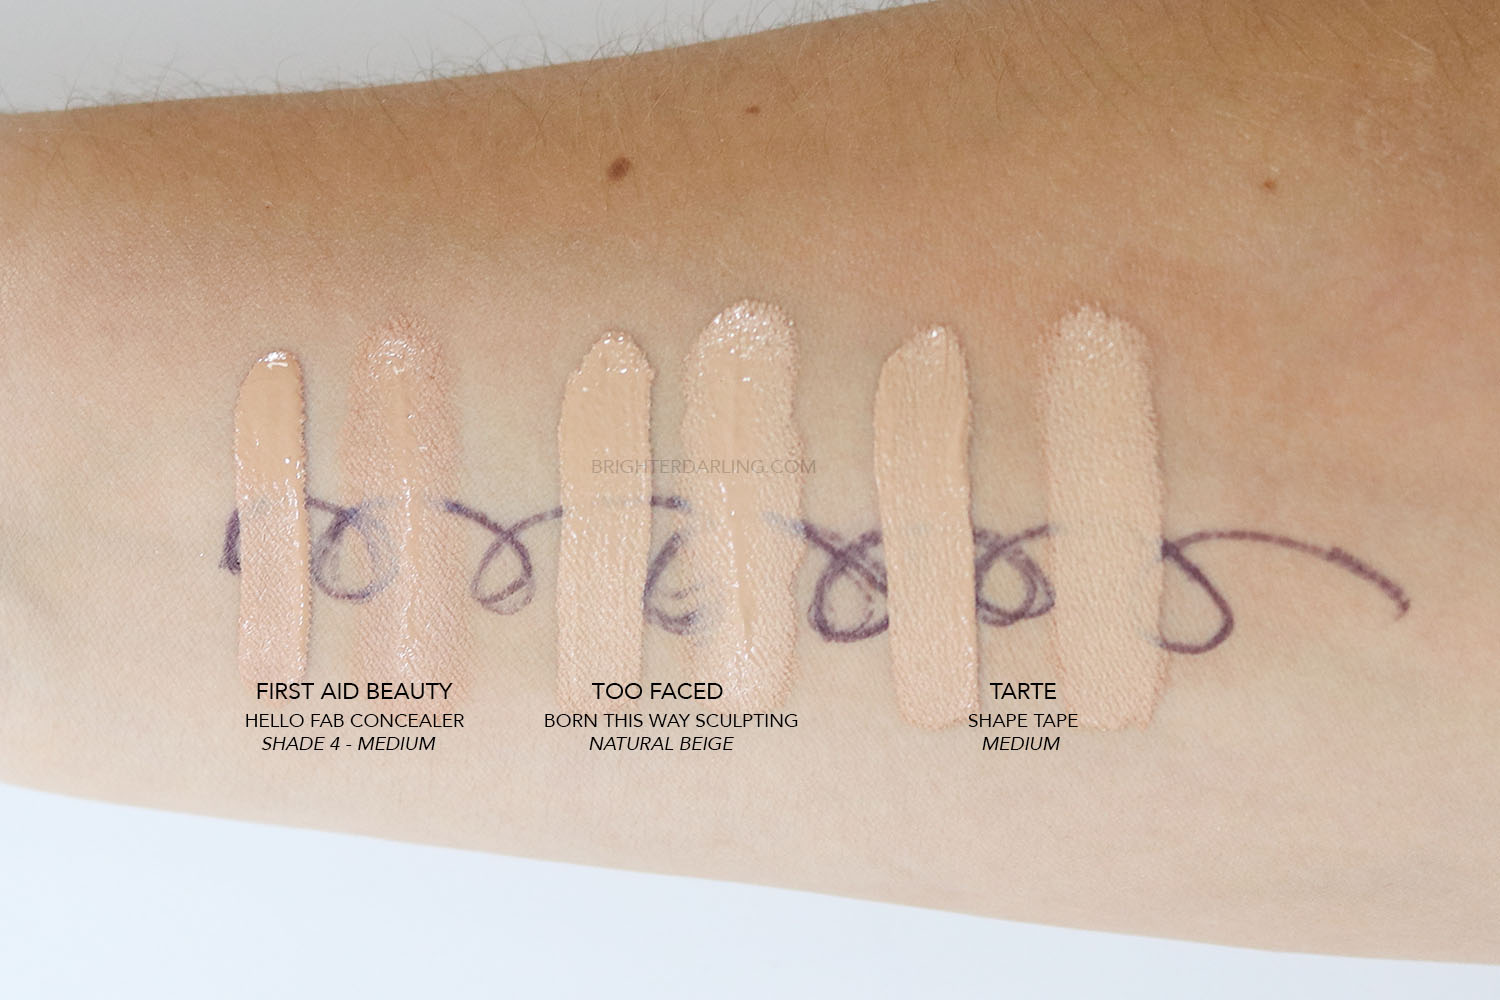 First Aid Beauty Hello FAB Bendy Avocado Concealer Swatch Compared to Too Faced Born This Way Sculpting Concealer Compared to Tarte Shape Tape